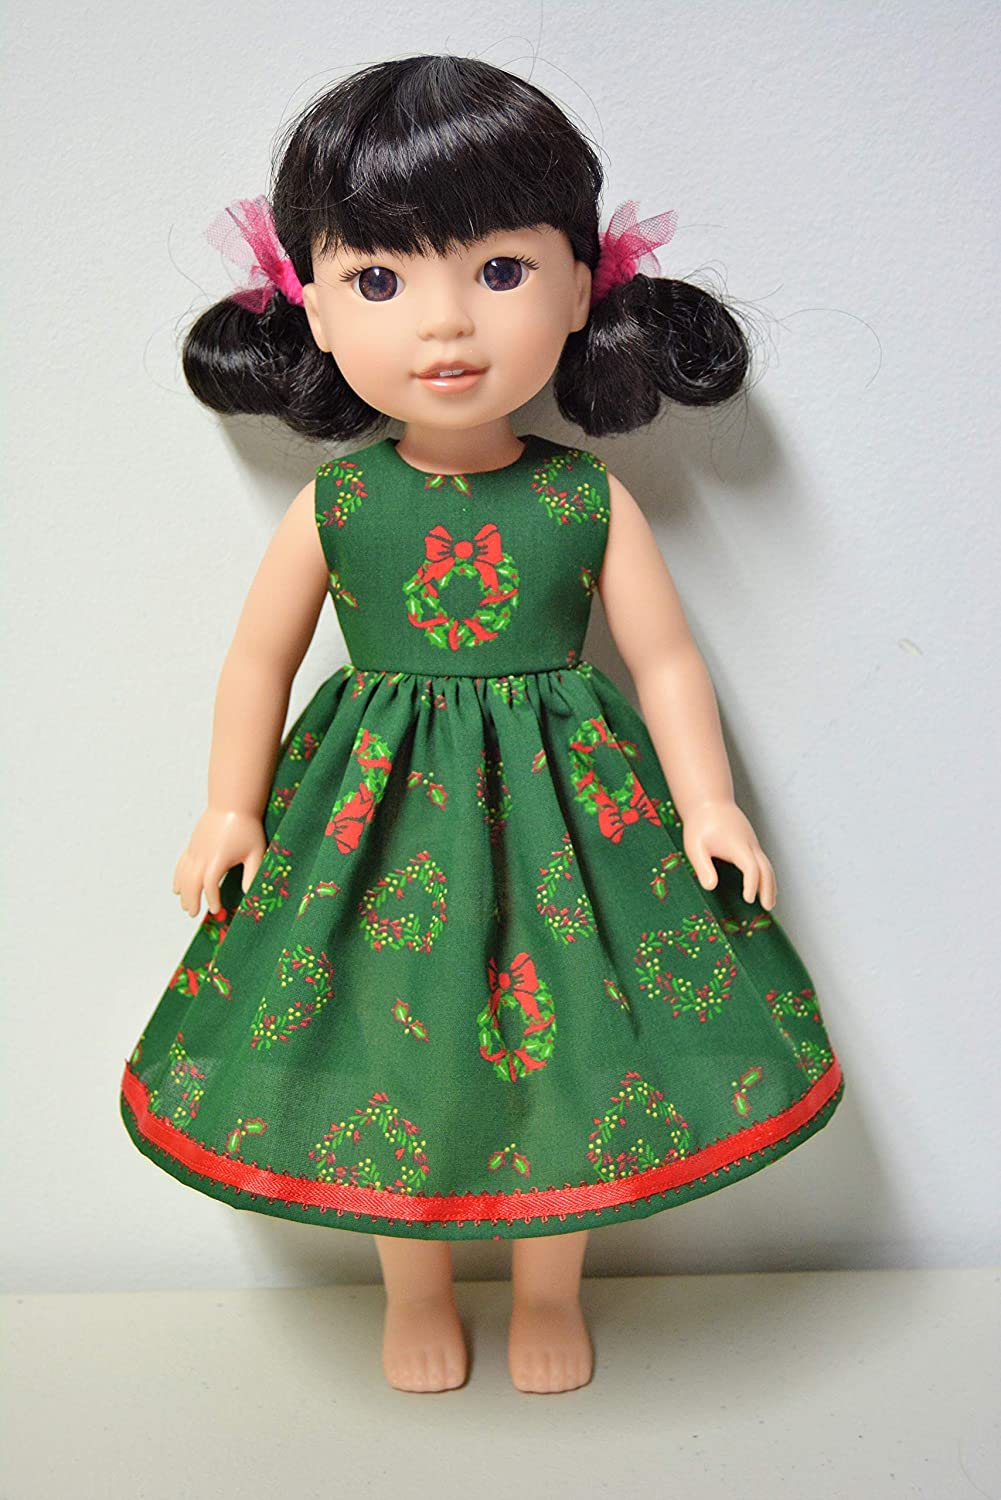 Handmade Doll Clothes Dress fits 14.5 American Girl Wellie Wishers and H4H Dolls Christmas K